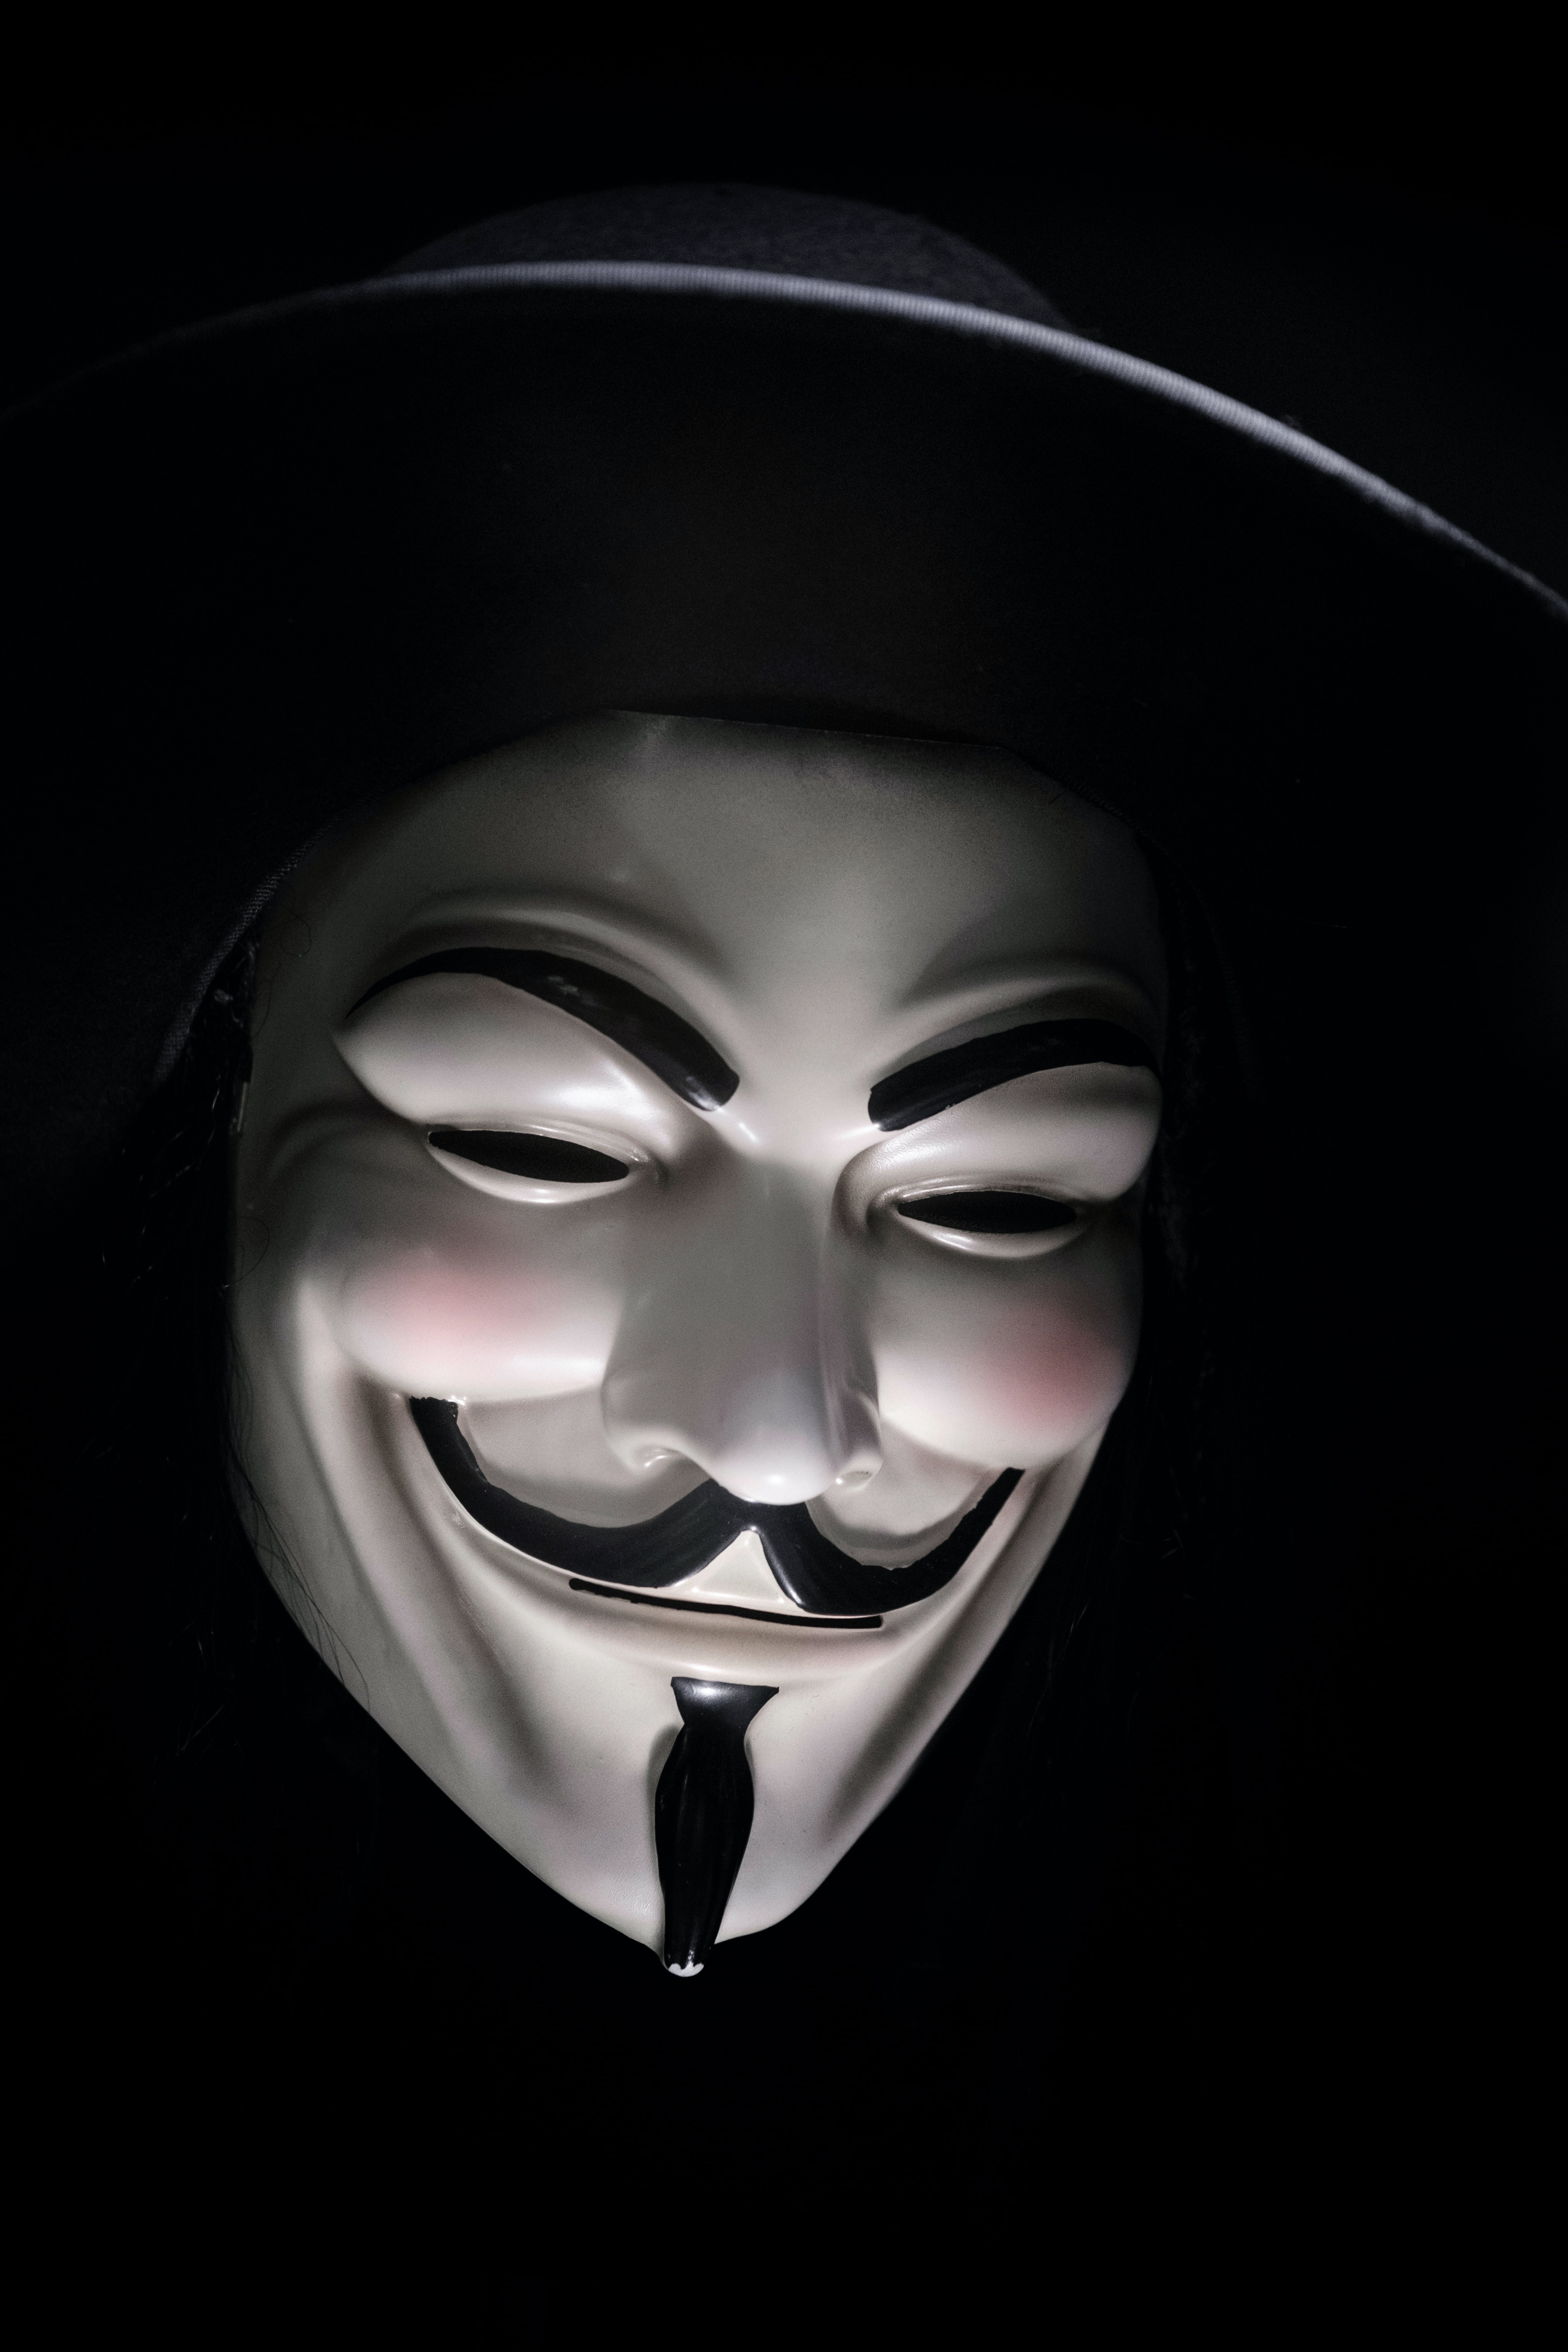 A smiling Guy Fawkes mask in shadow against a black background